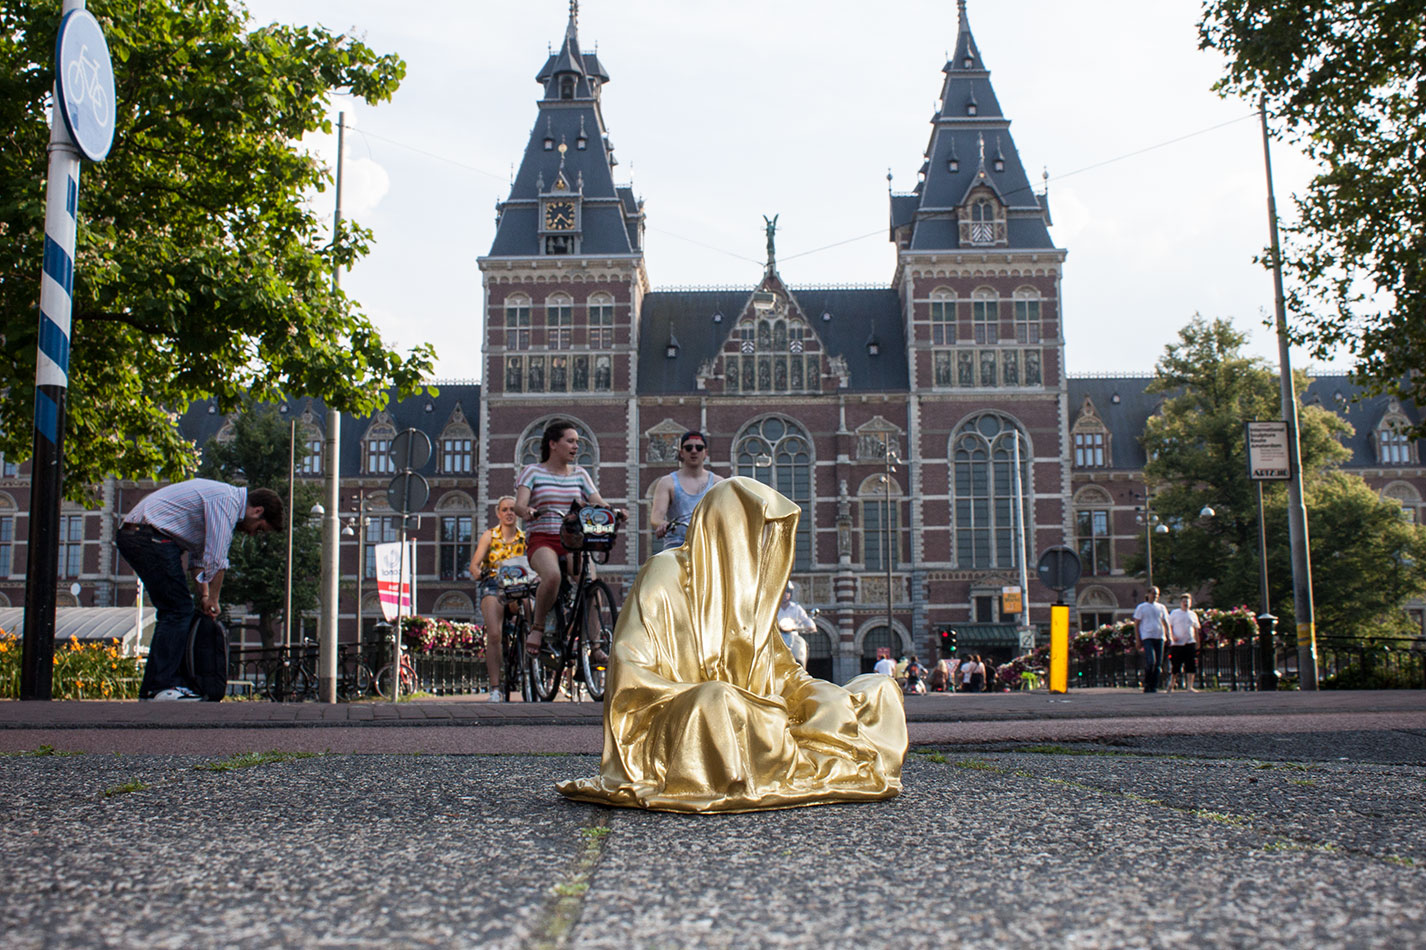 amstadam-netherlands-guardians-of-time-manfred-kielnhofer-public-modern-contemporary-art-fine-arts-sculpture-design-streat-art-2019